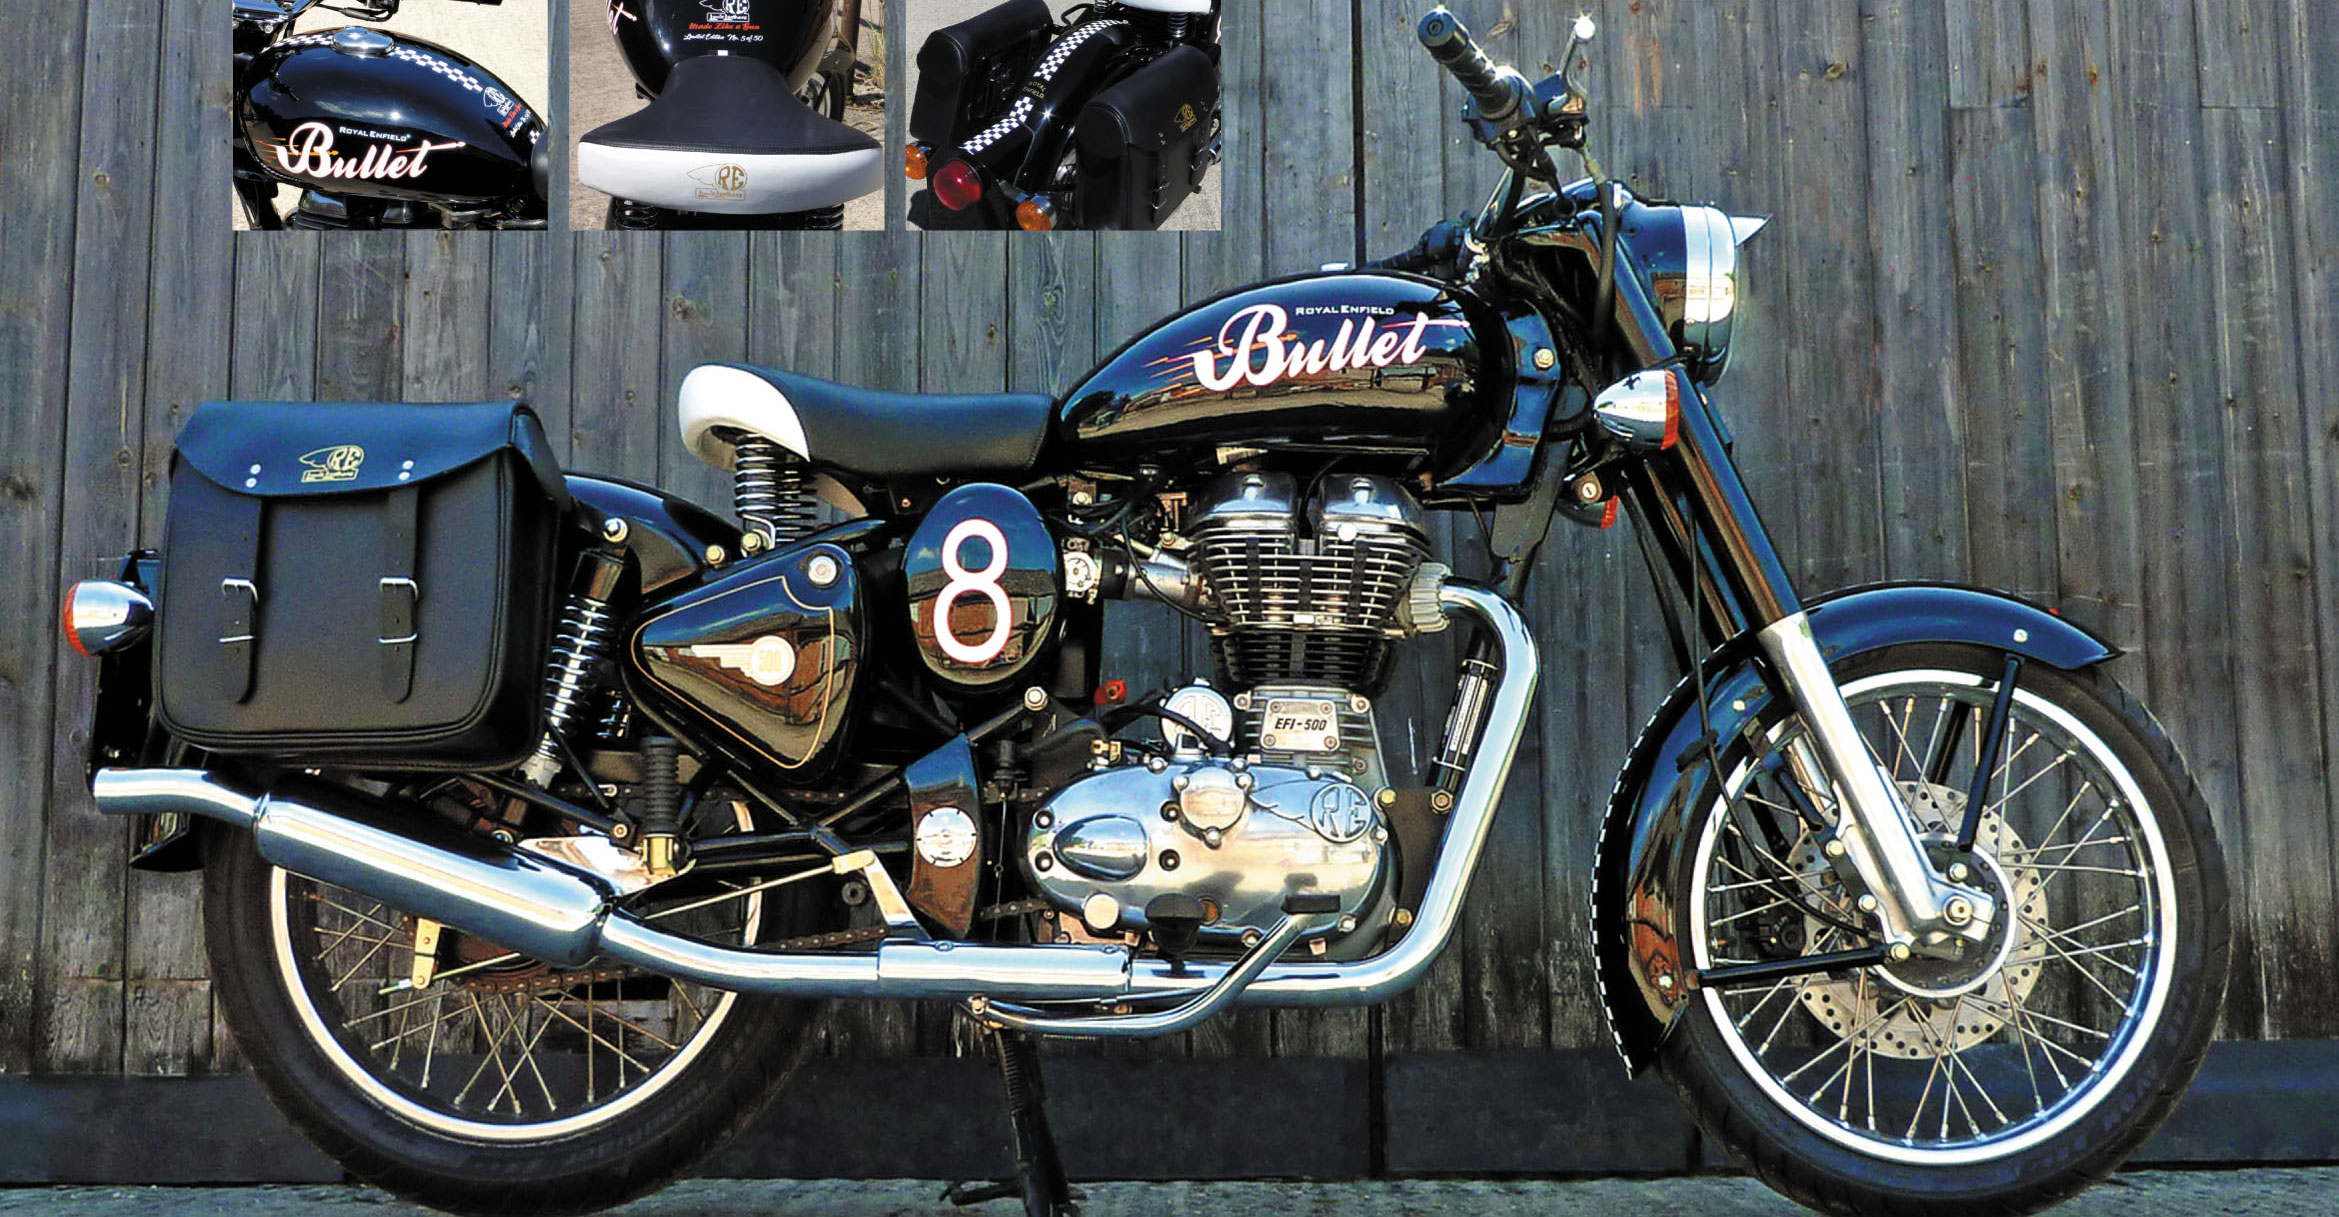 Royal Enfield Bullet 500 Classic 2008 images #127685